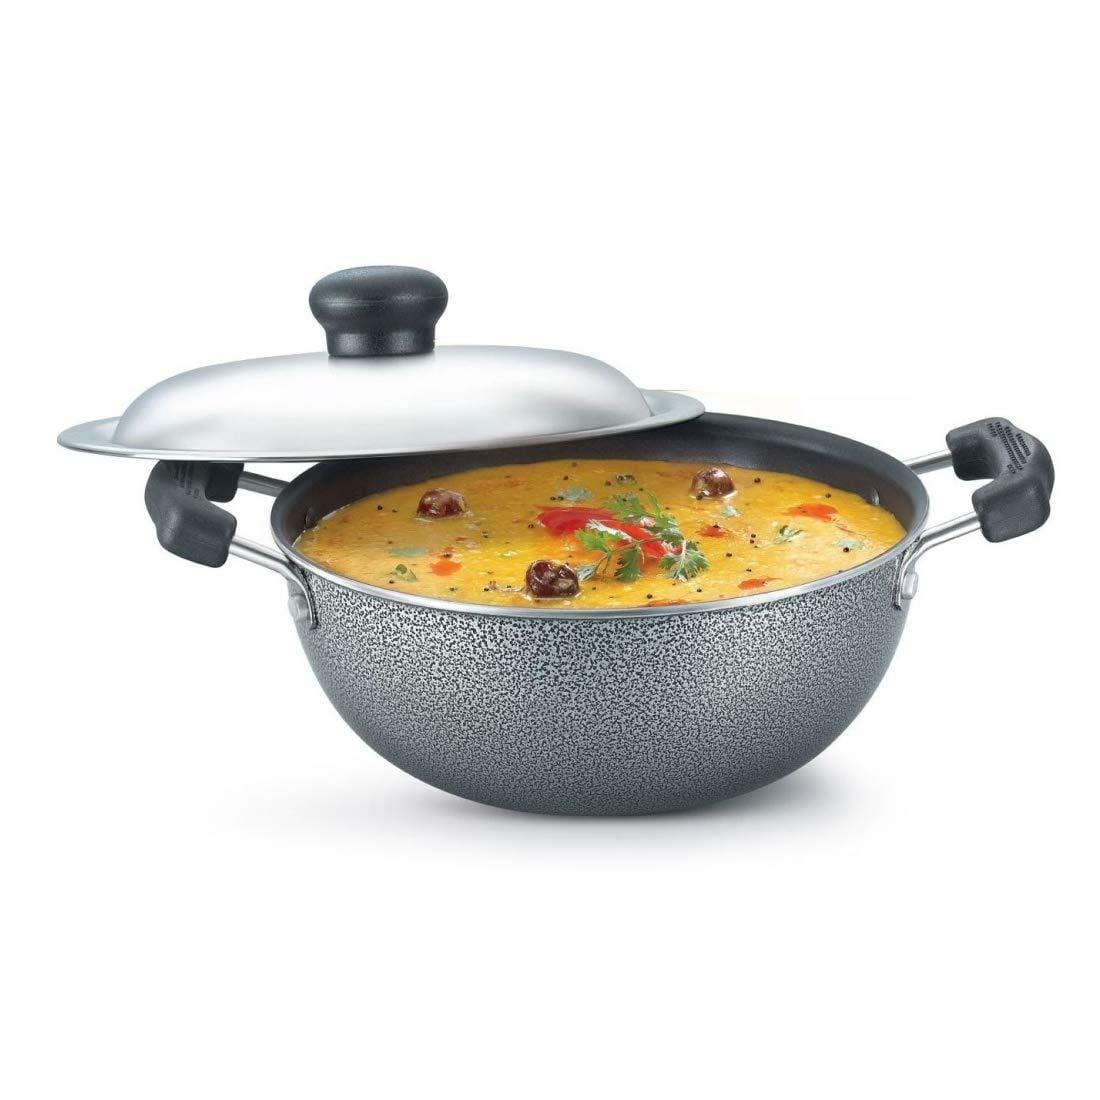 Prestige Omega Select Plus Non-Stick Flat Base Kadai with Lid(Grey) 200 mm (2.2 Litre) 8901365307303